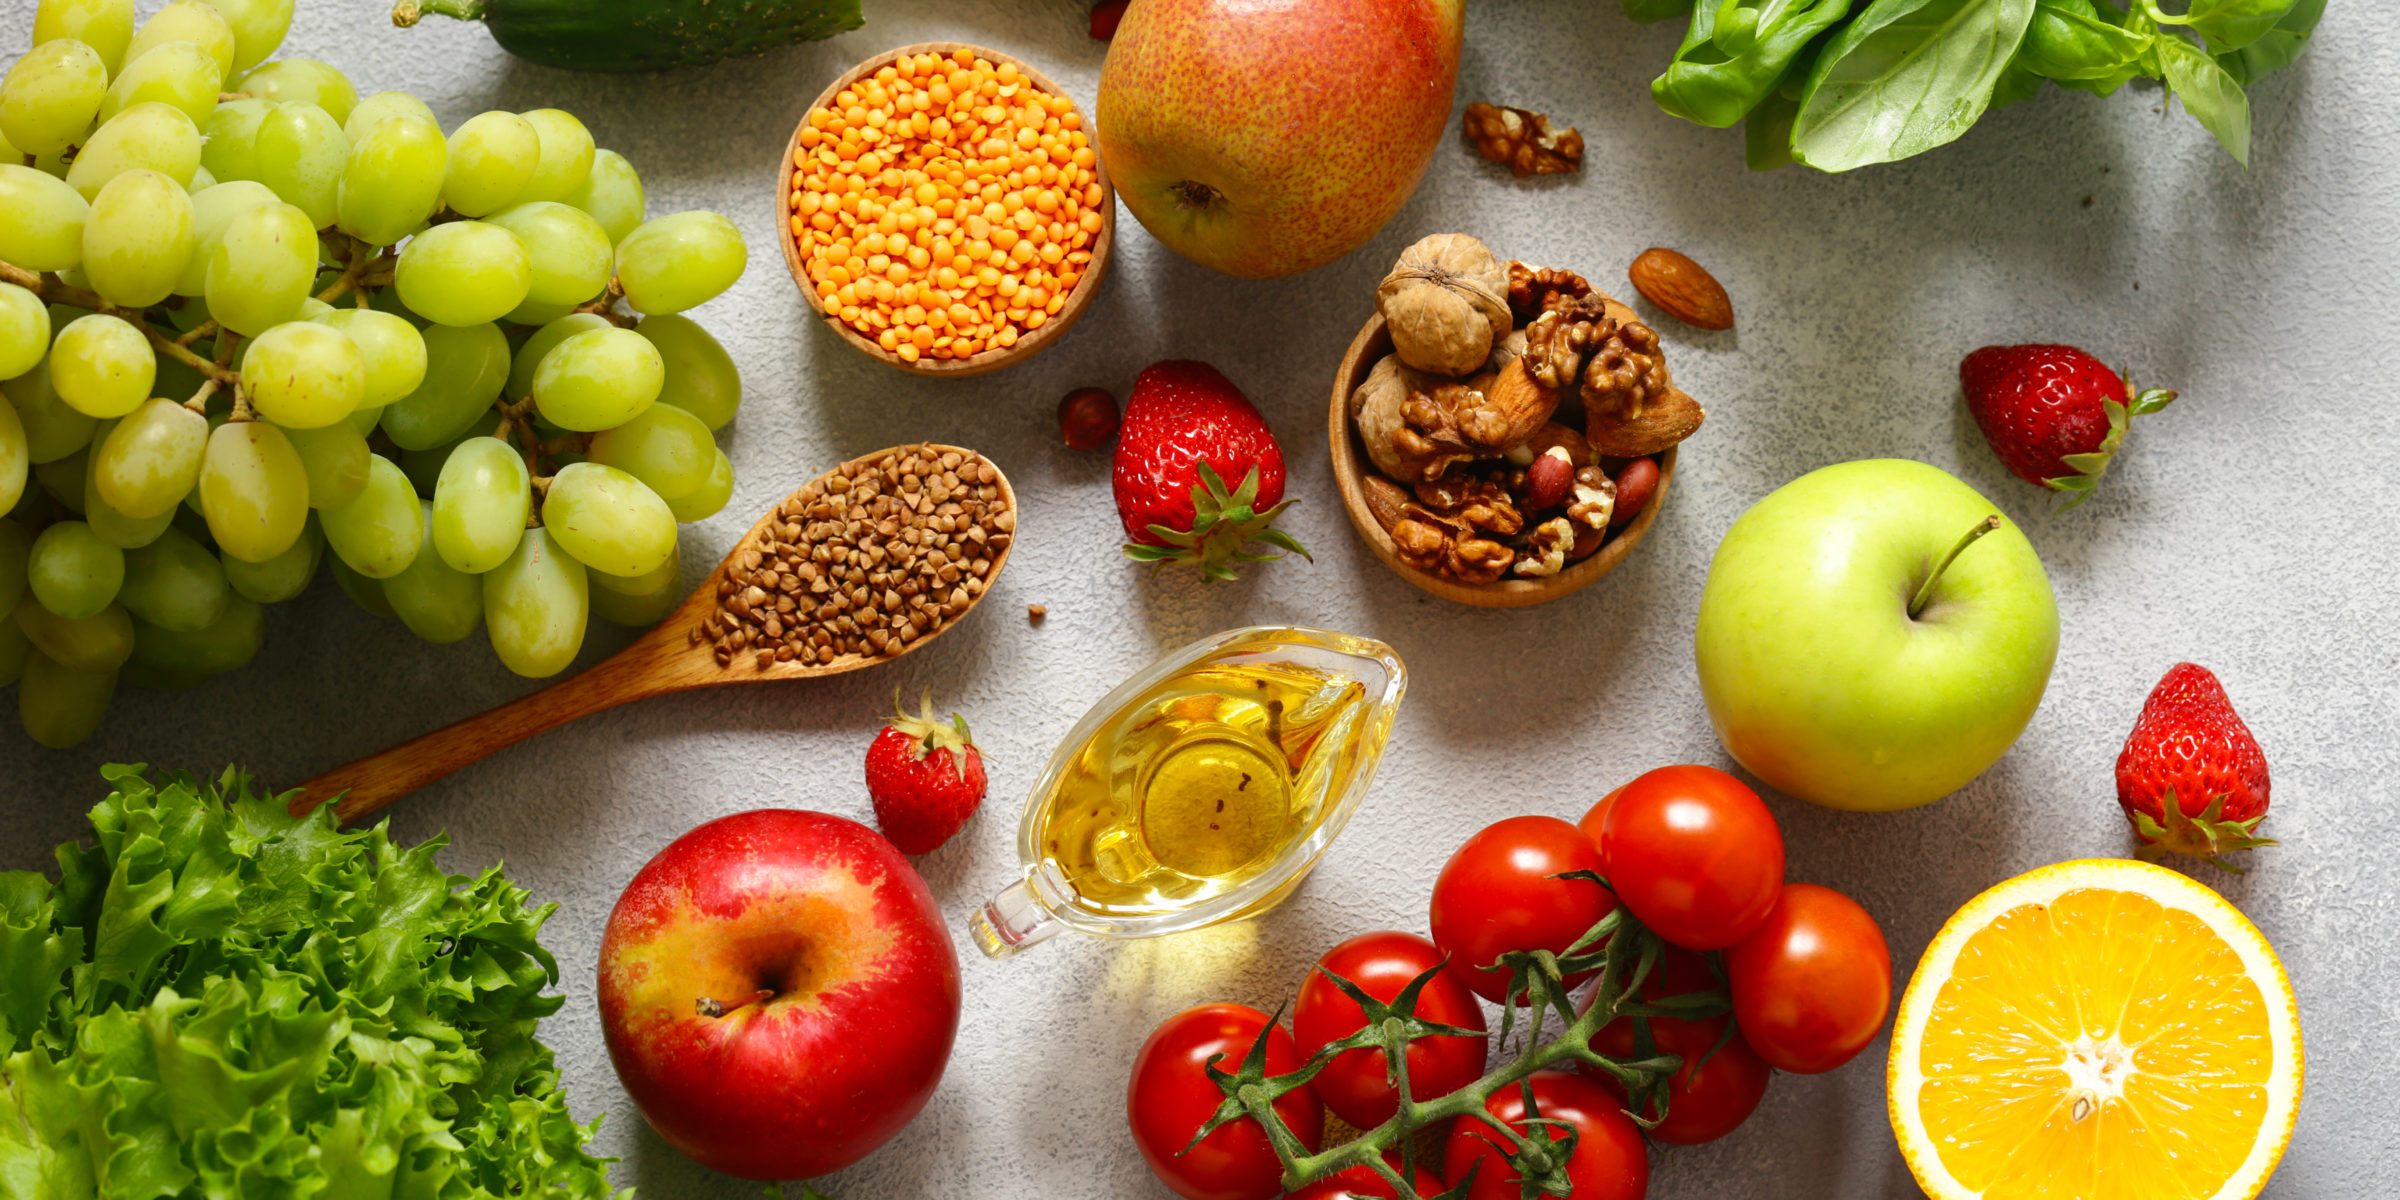 fresh-vegetables-and-fruits-P5348AX-scaled.jpg